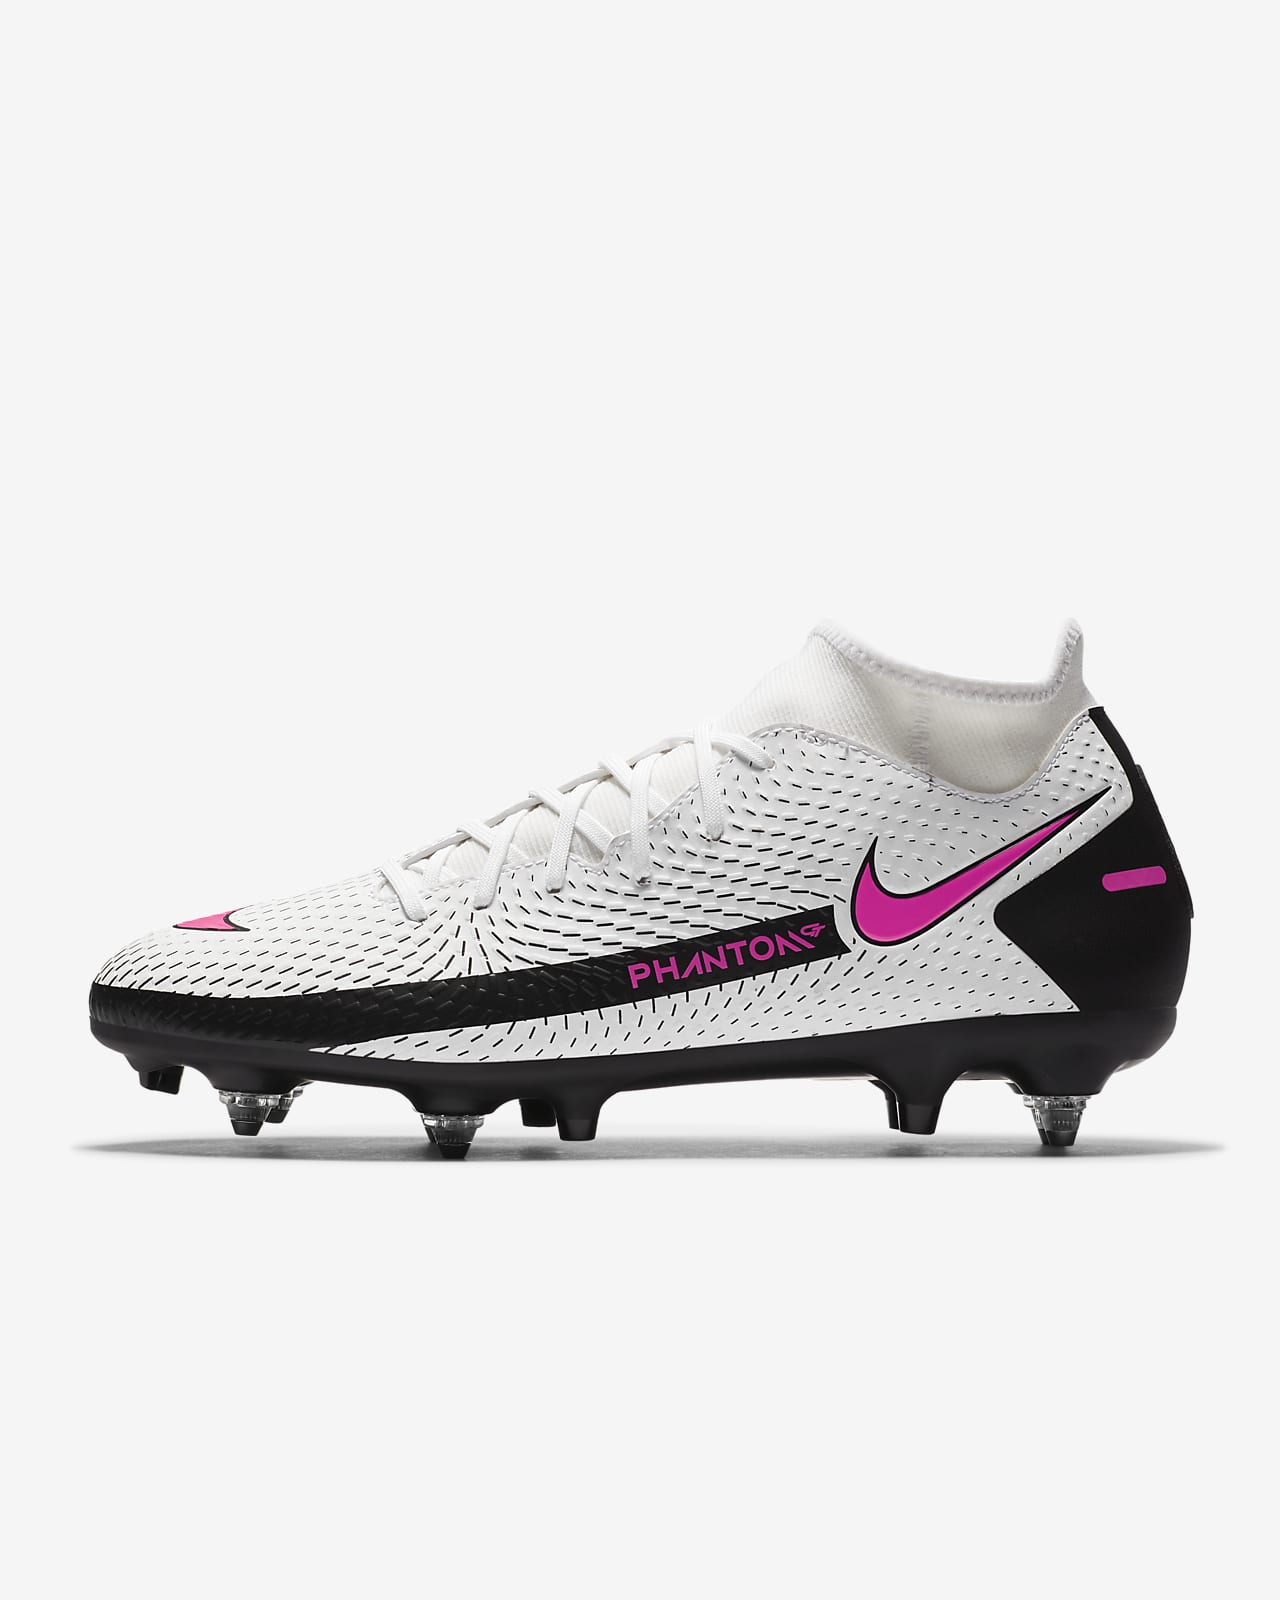 Nike Phantom GT Academy Dynamic Fit SG-PRO Anti-Clog Traction Soft-Ground Football Boot